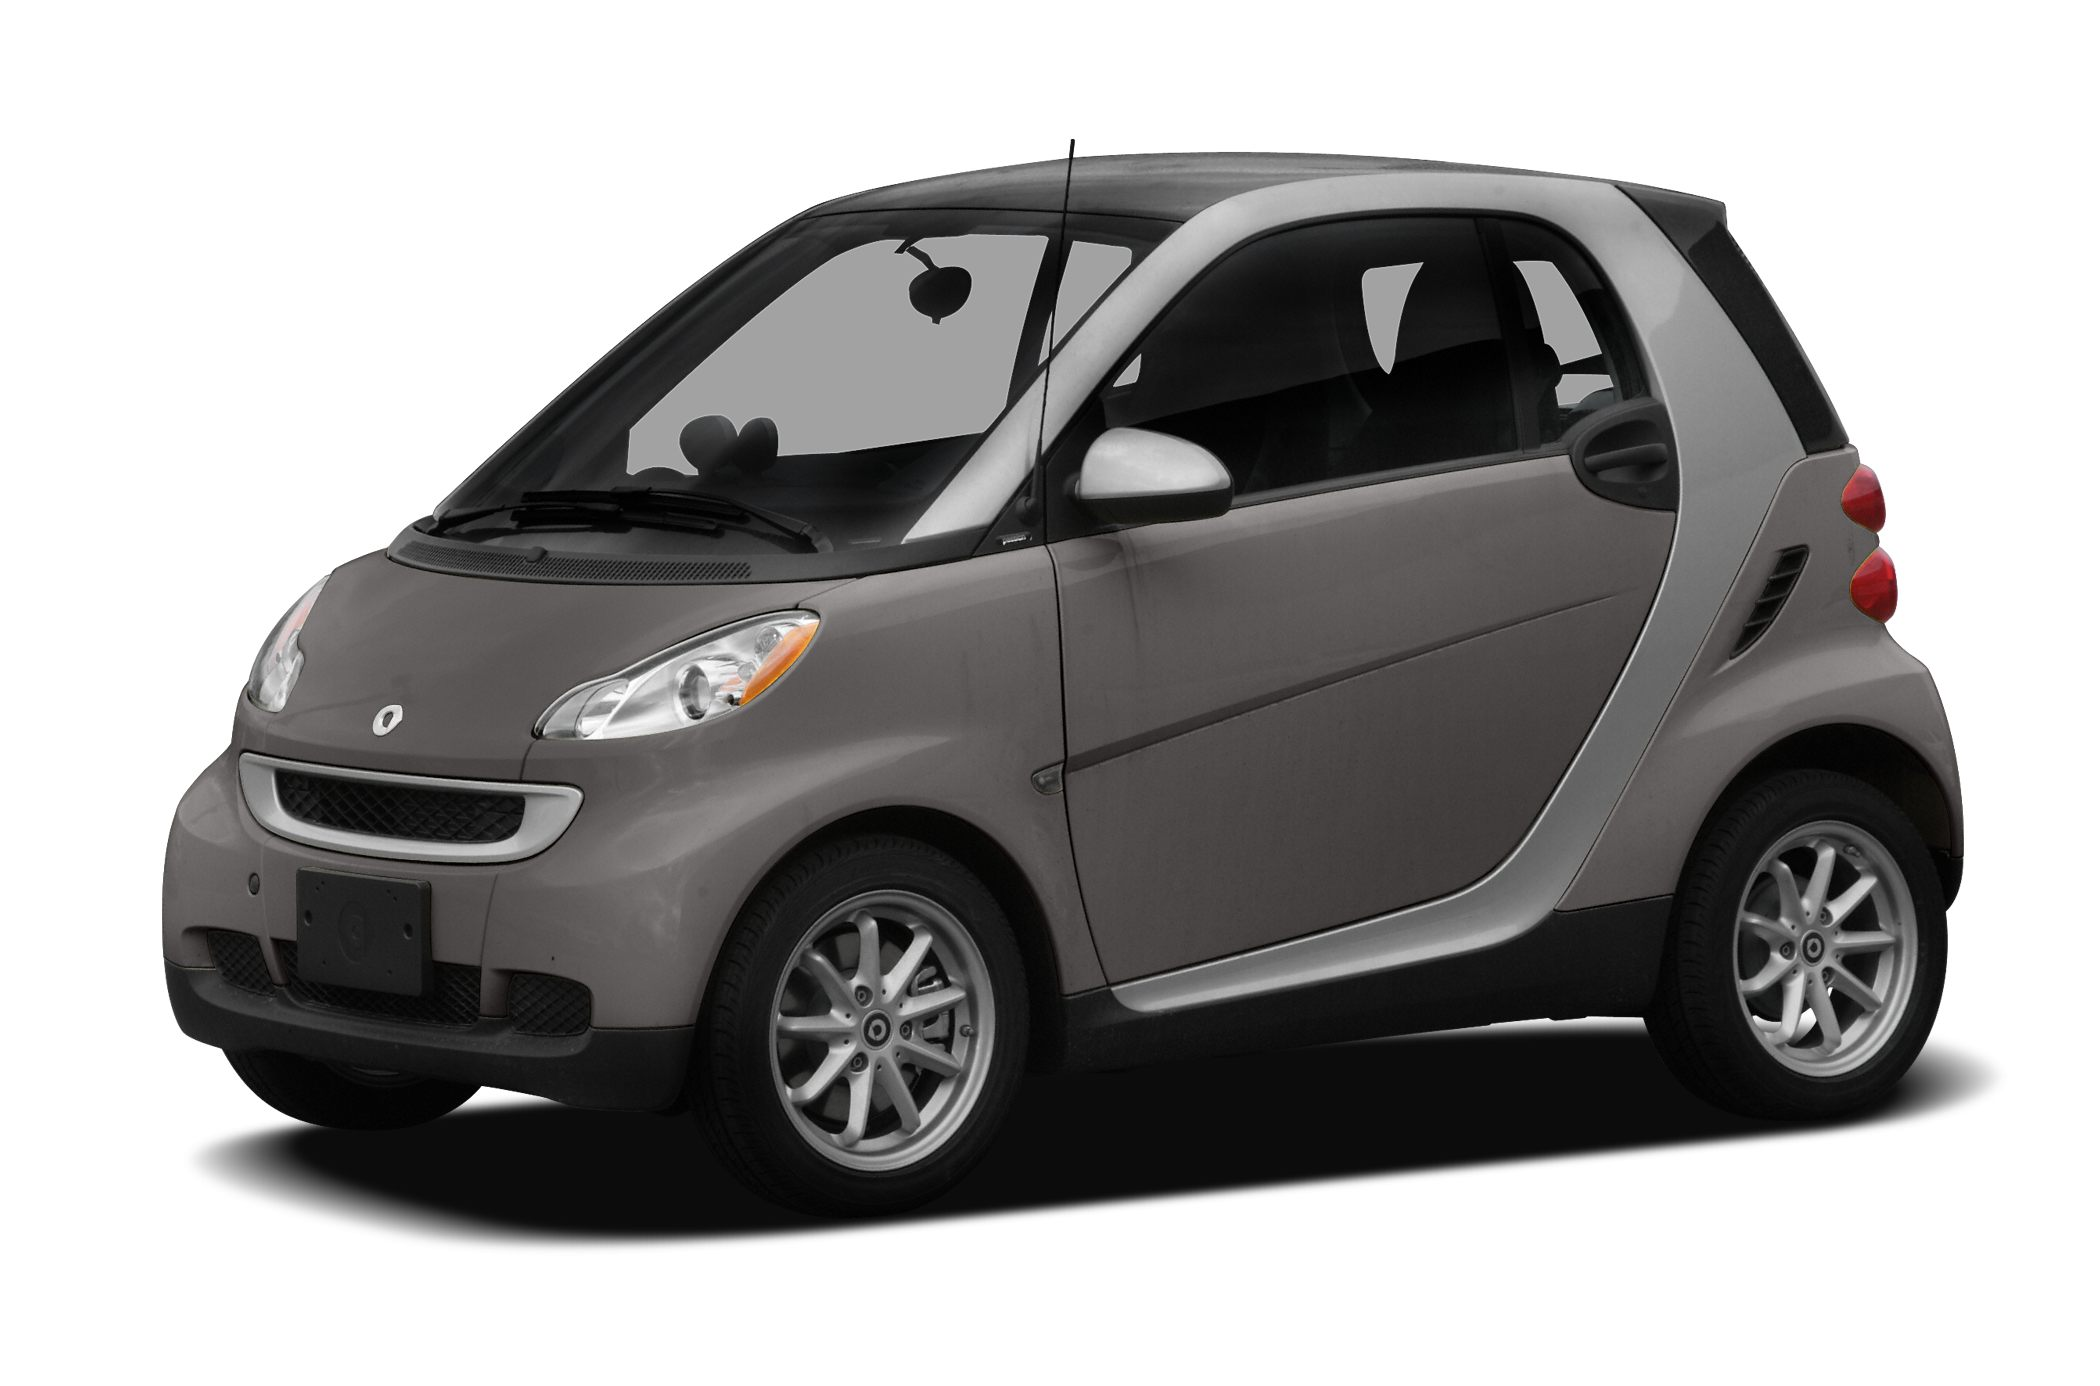 2012 Smart ForTwo Passion Coupe for sale in Fredericksburg for $9,995 with 36,067 miles